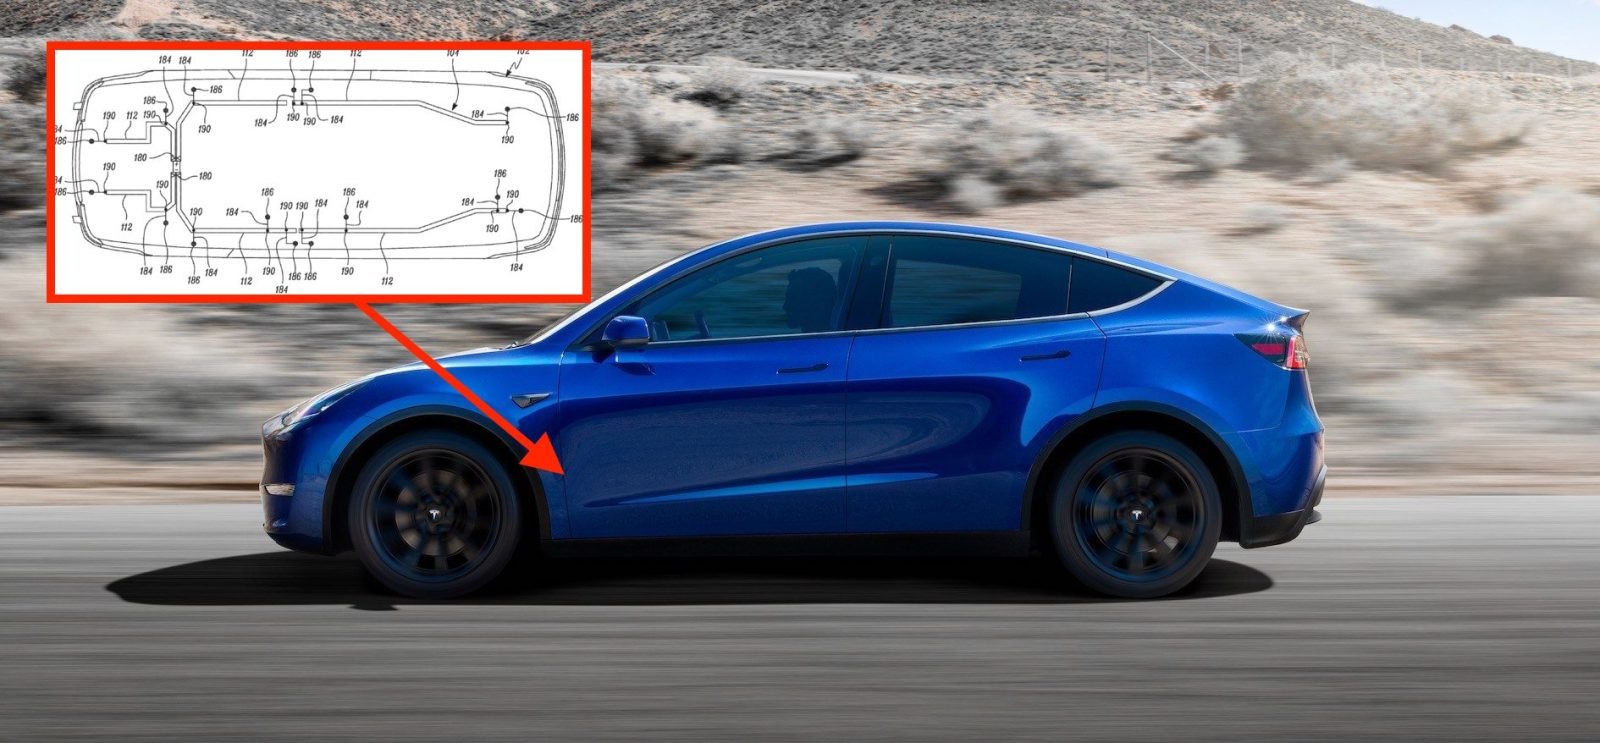 tesla reveals revolutionary new wiring architecture to help robots build upcoming cars like model y [ 1600 x 743 Pixel ]